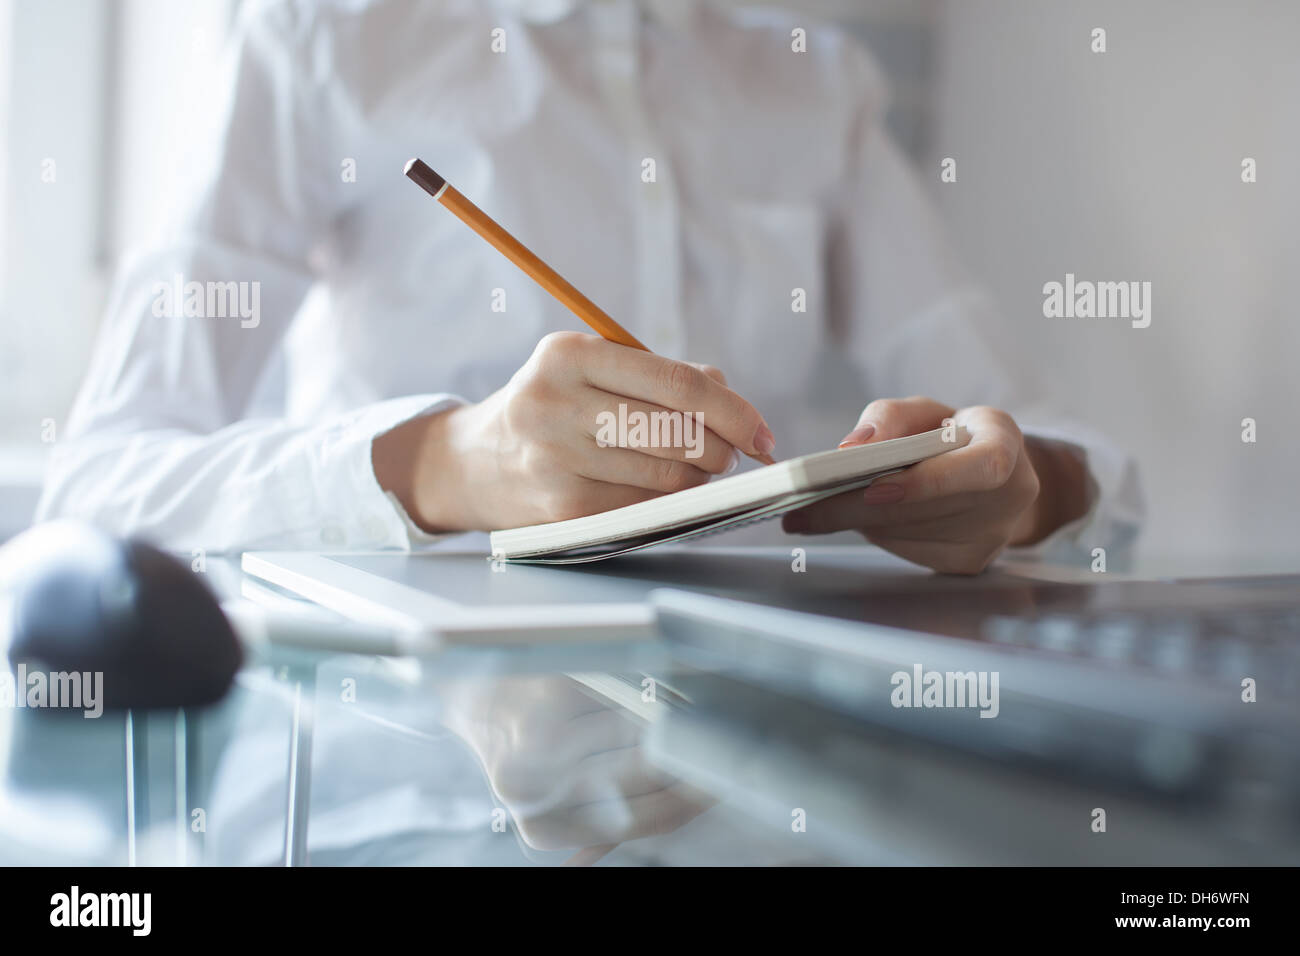 Woman's hand using a pencil noting on notepad - Stock Image